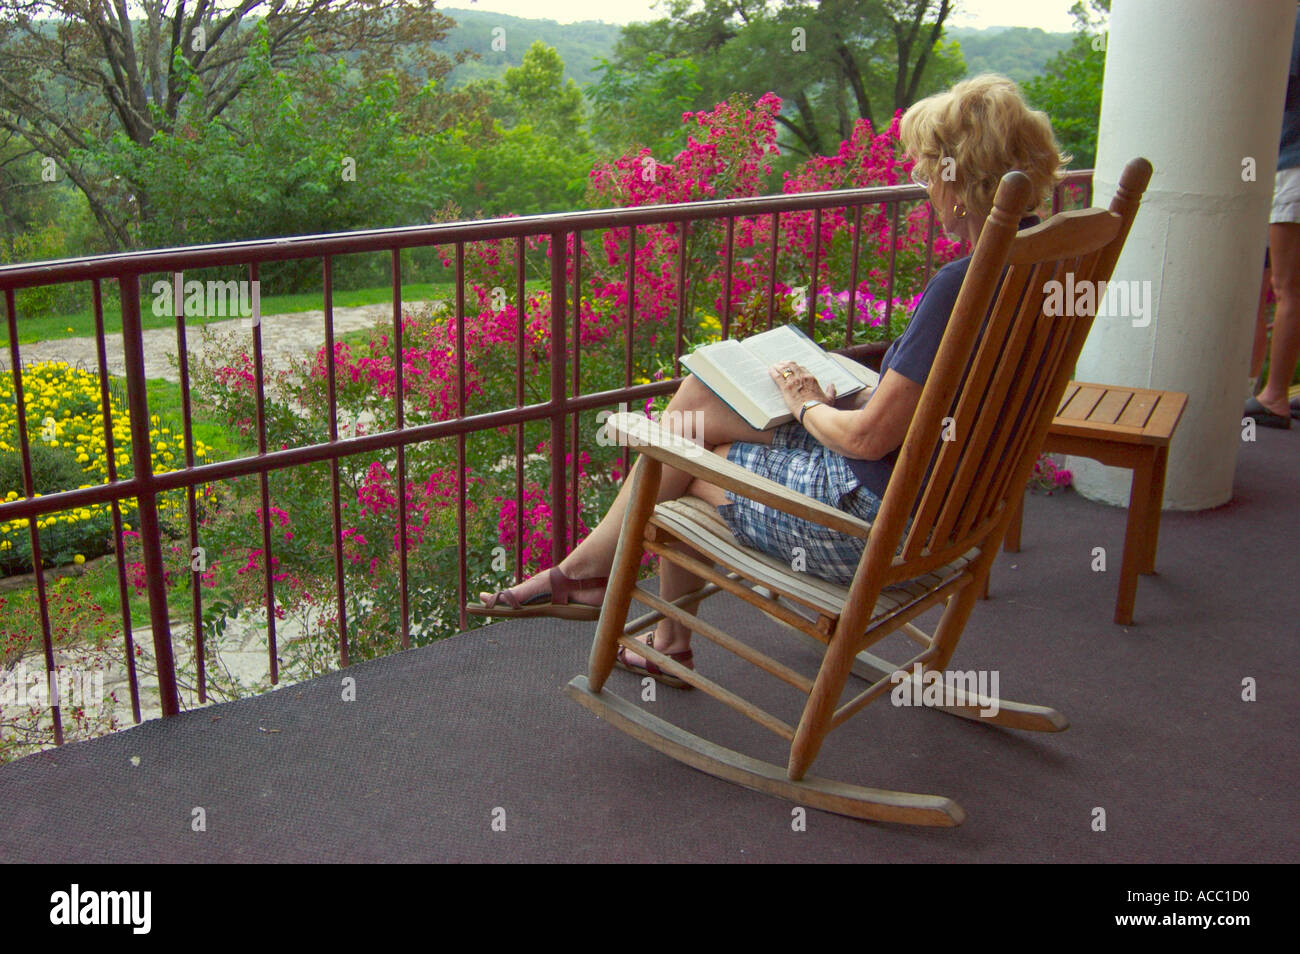 Rocking Chairs On Porch At Crescent Hotel Eureka Springs Arkansas USA    Stock Image